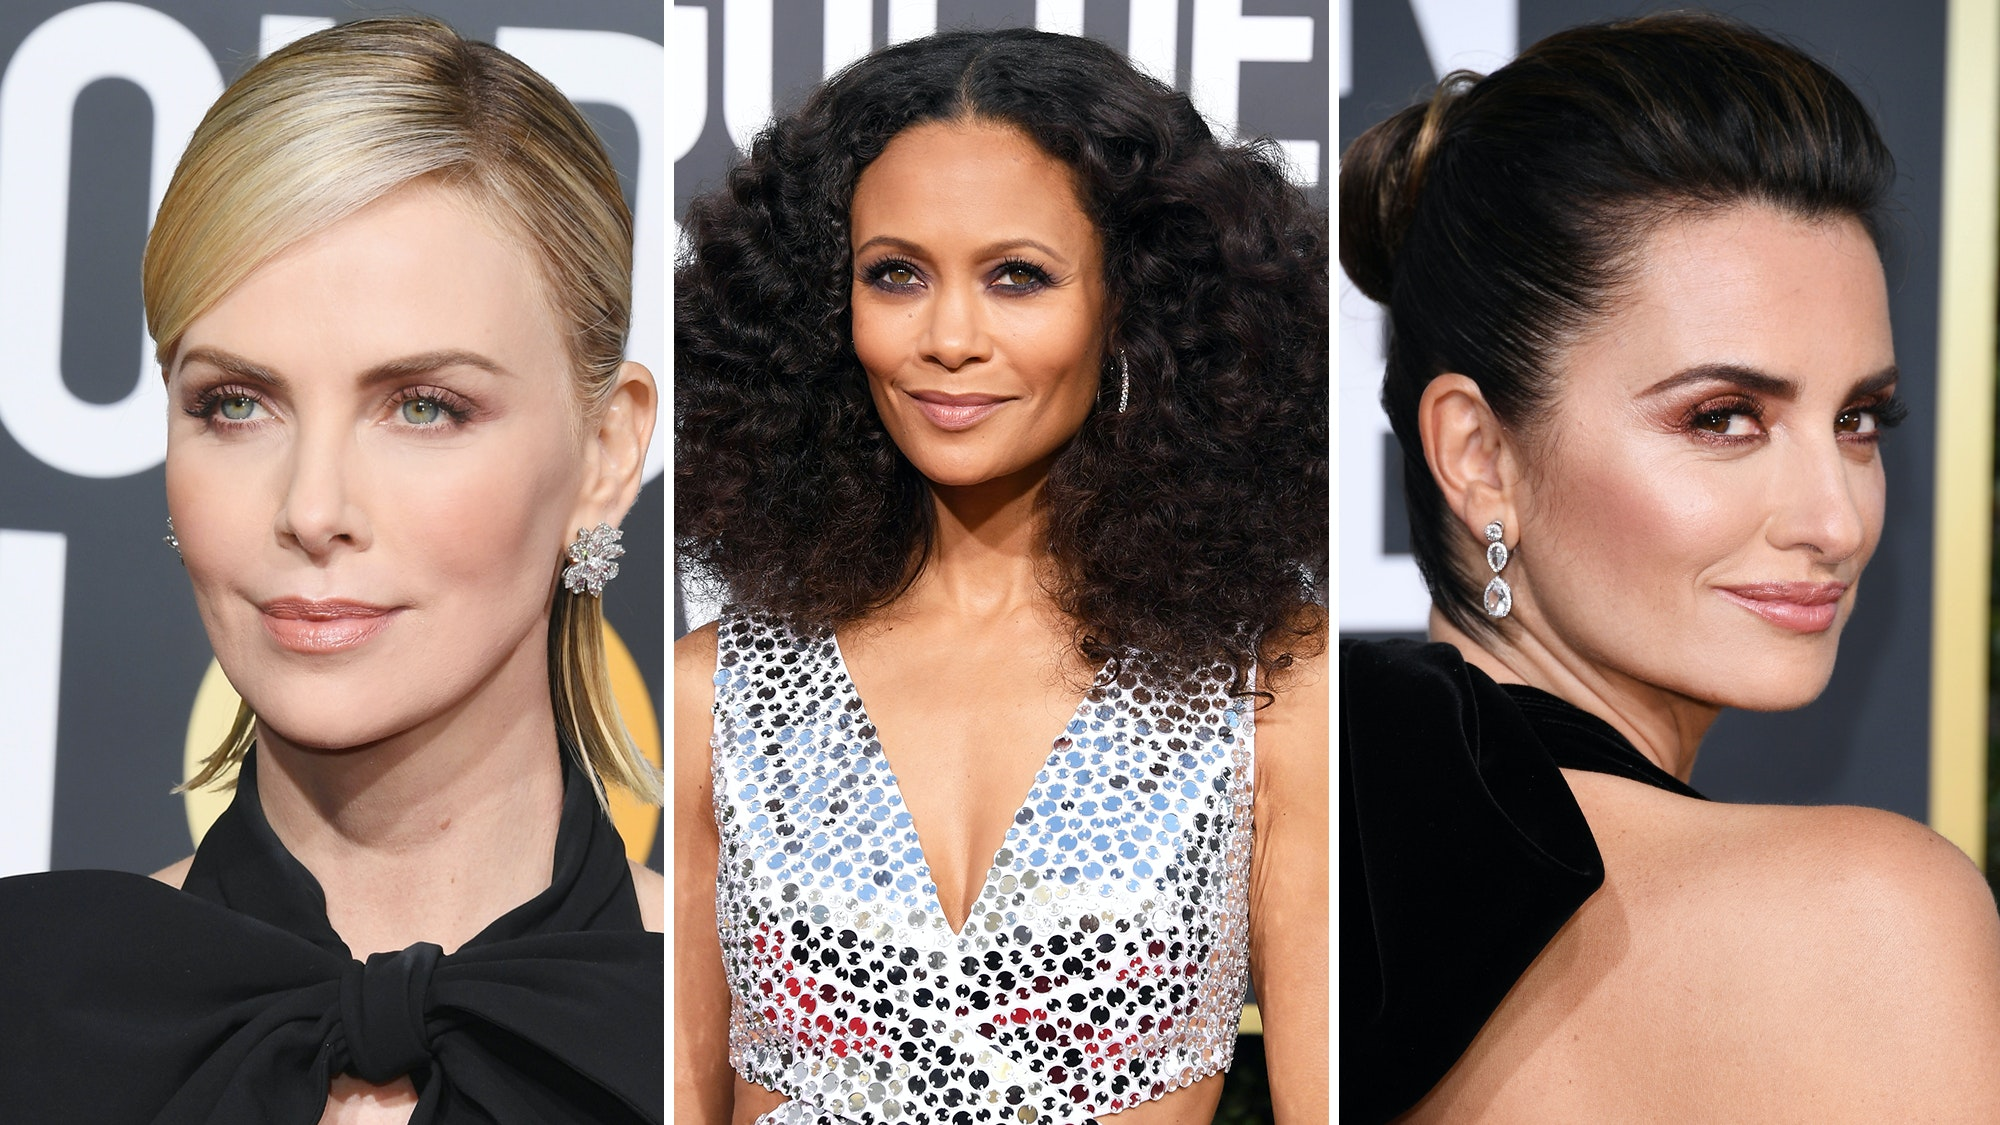 10 Beauty Looks From the 2019 Golden Globes You Don't Want to Miss